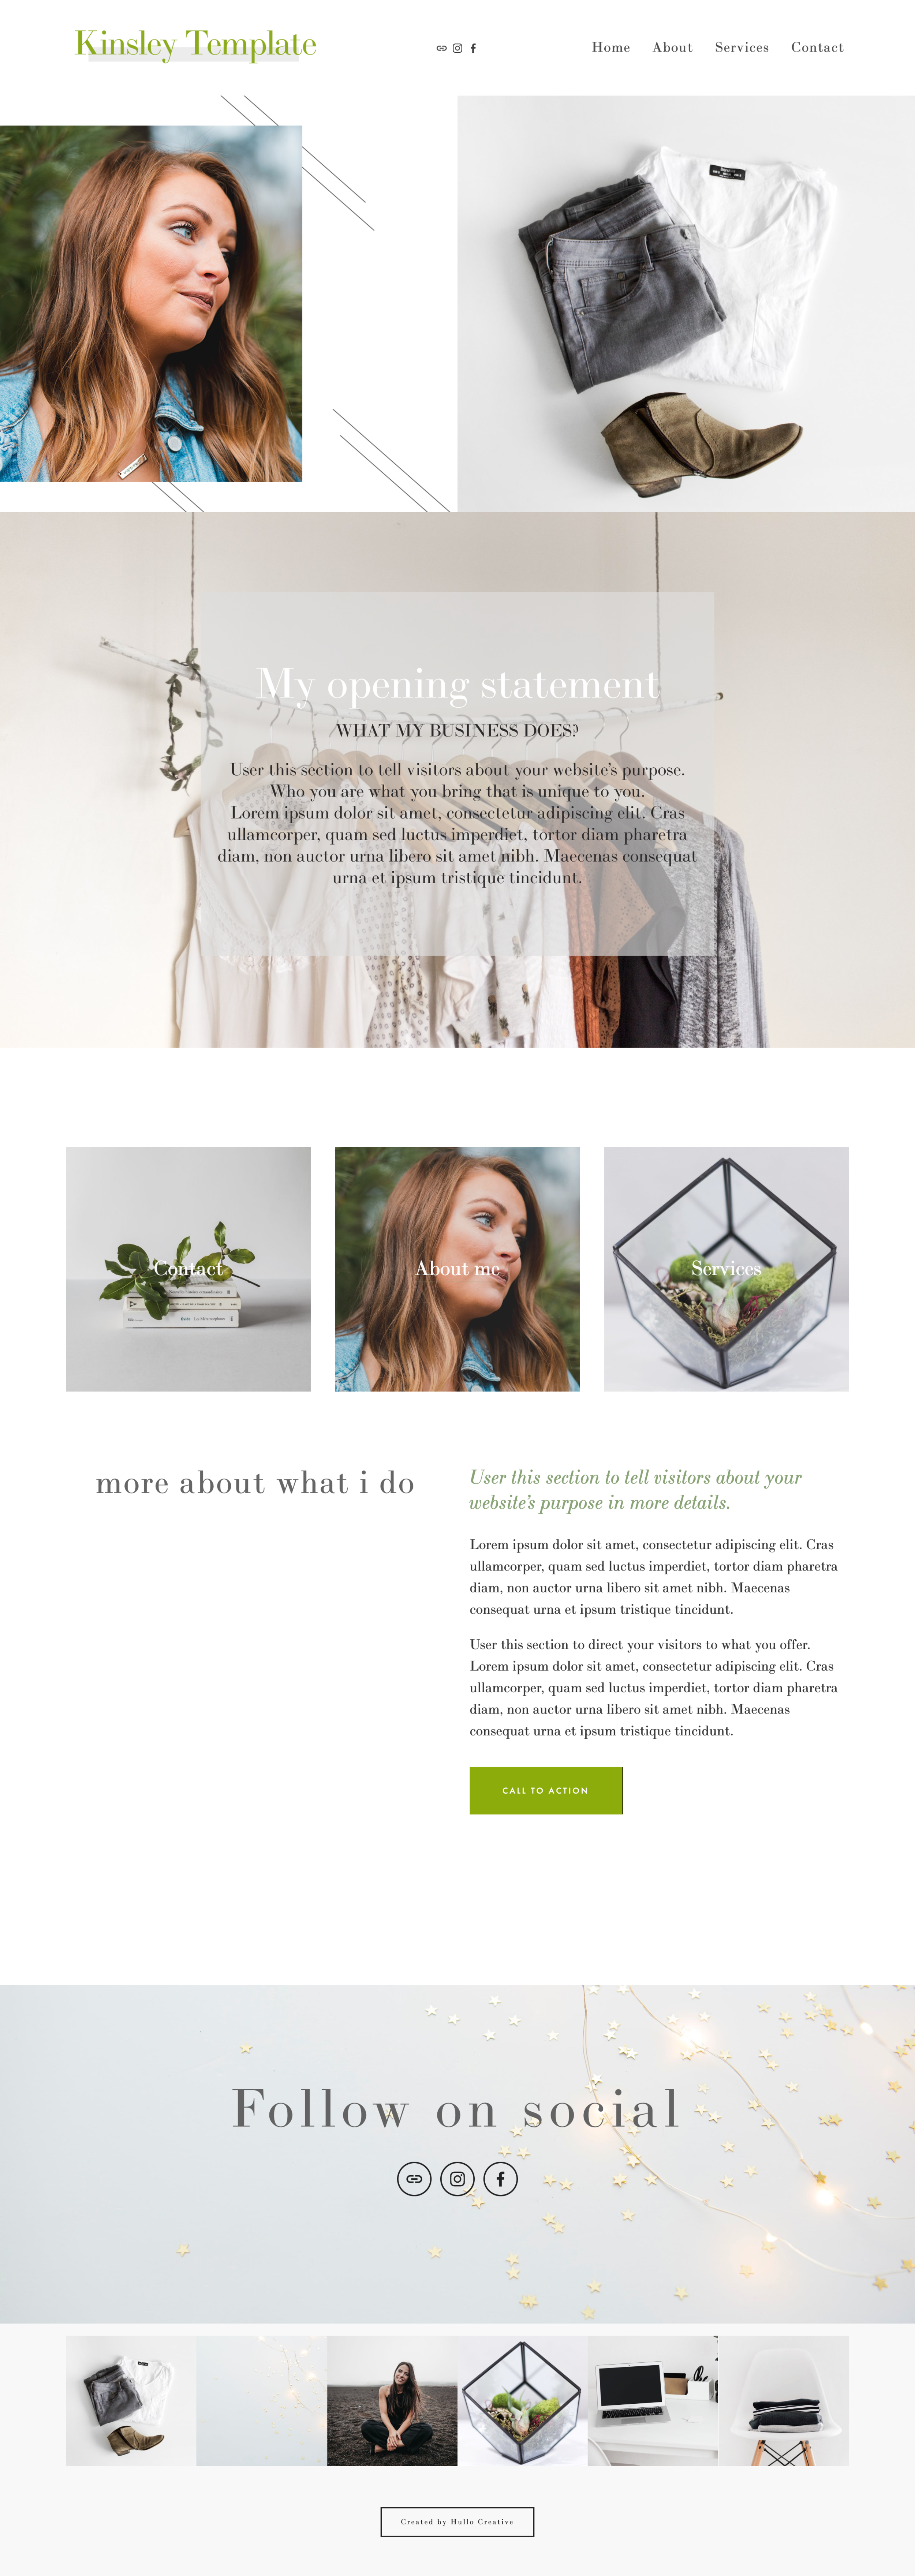 screencapture-kinsley-template-squarespace-2019-10-04-10_59_08.png